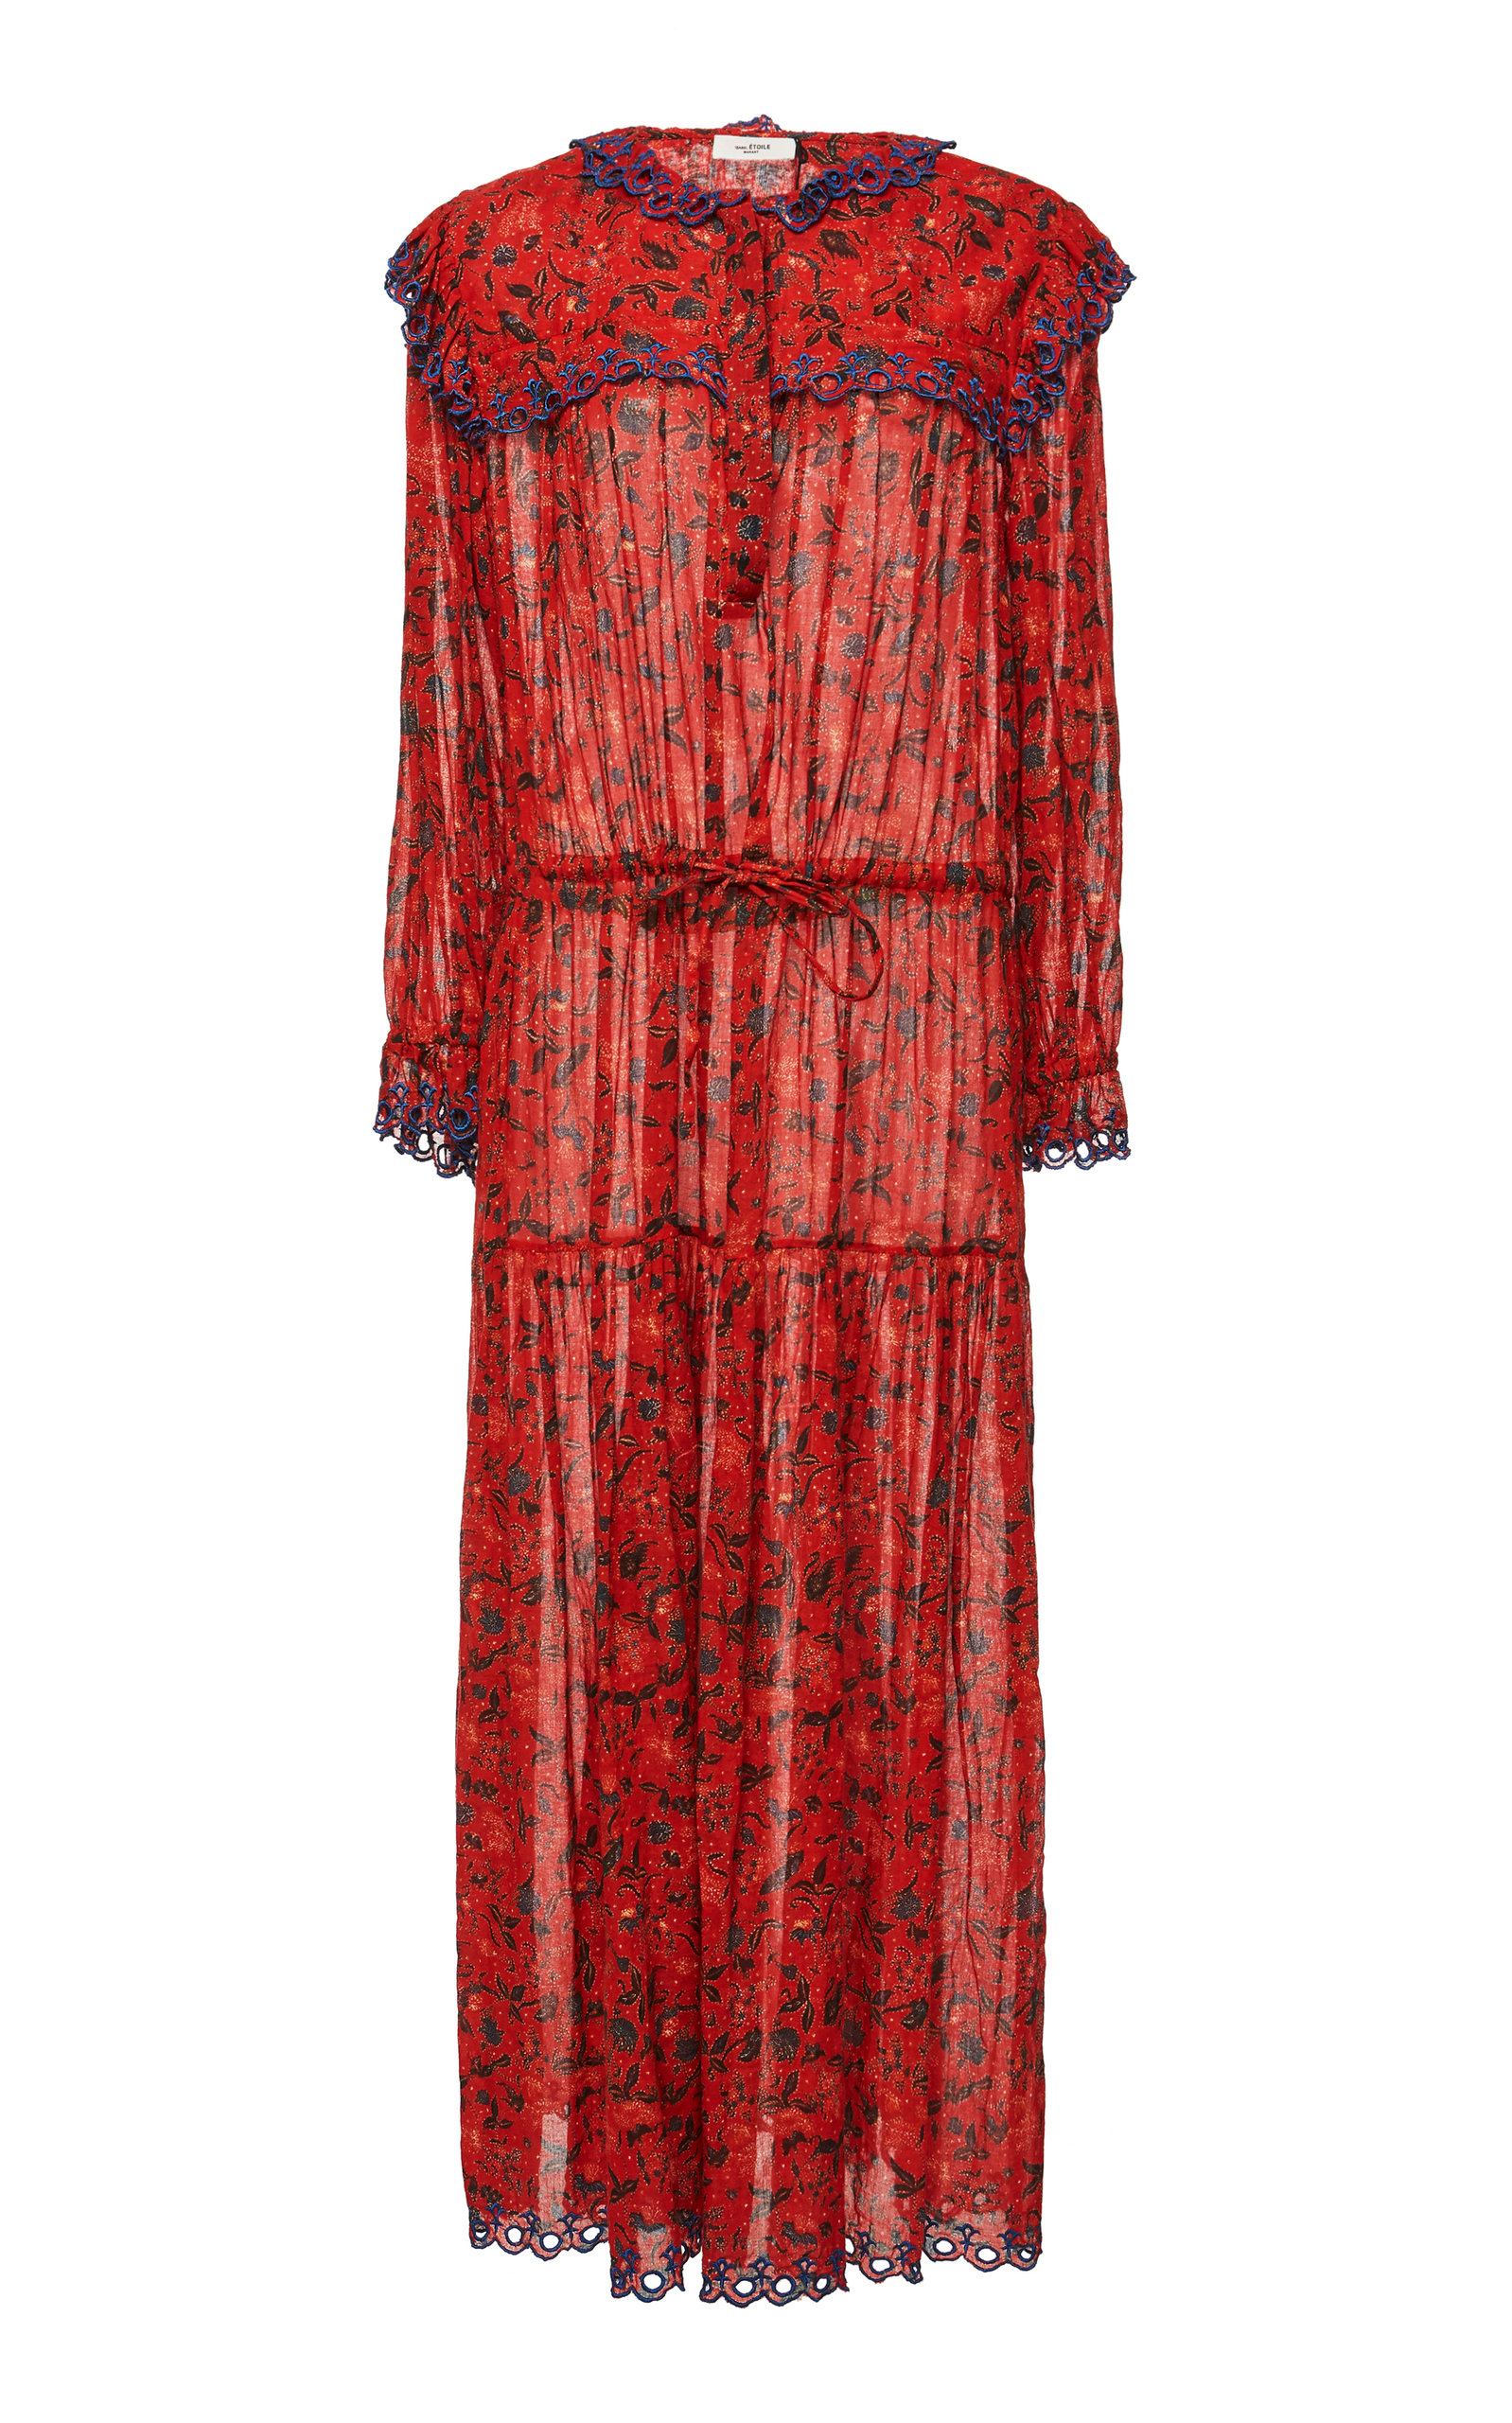 Isabel Marant Étoile - Eina Embroidered Floral Print Midi Dress - Womens - Red